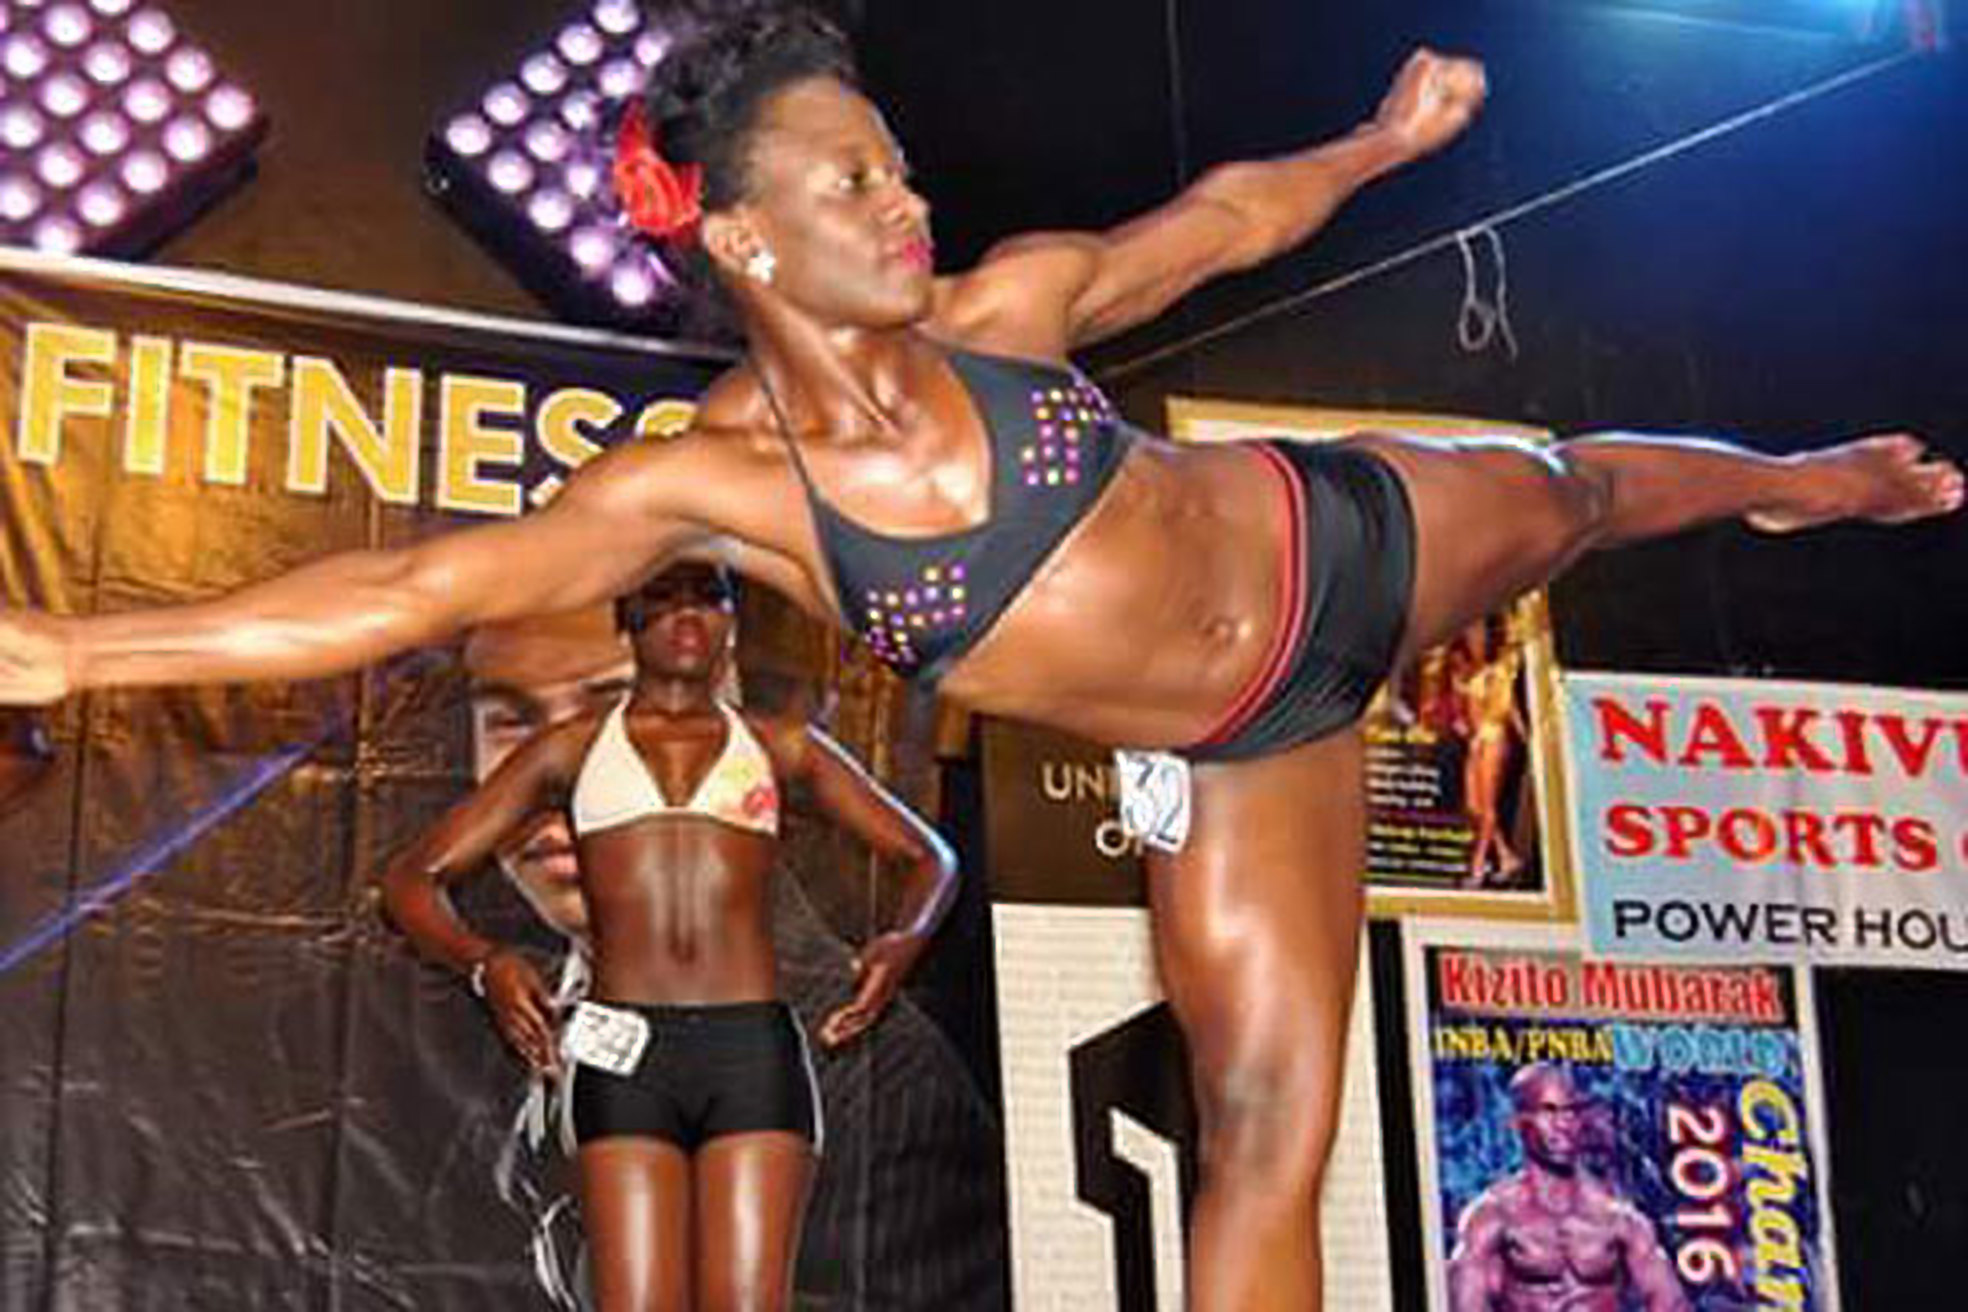 Body builder, Irene Kasuubo at Miss Fitness 2016 (FILE PHOTO)